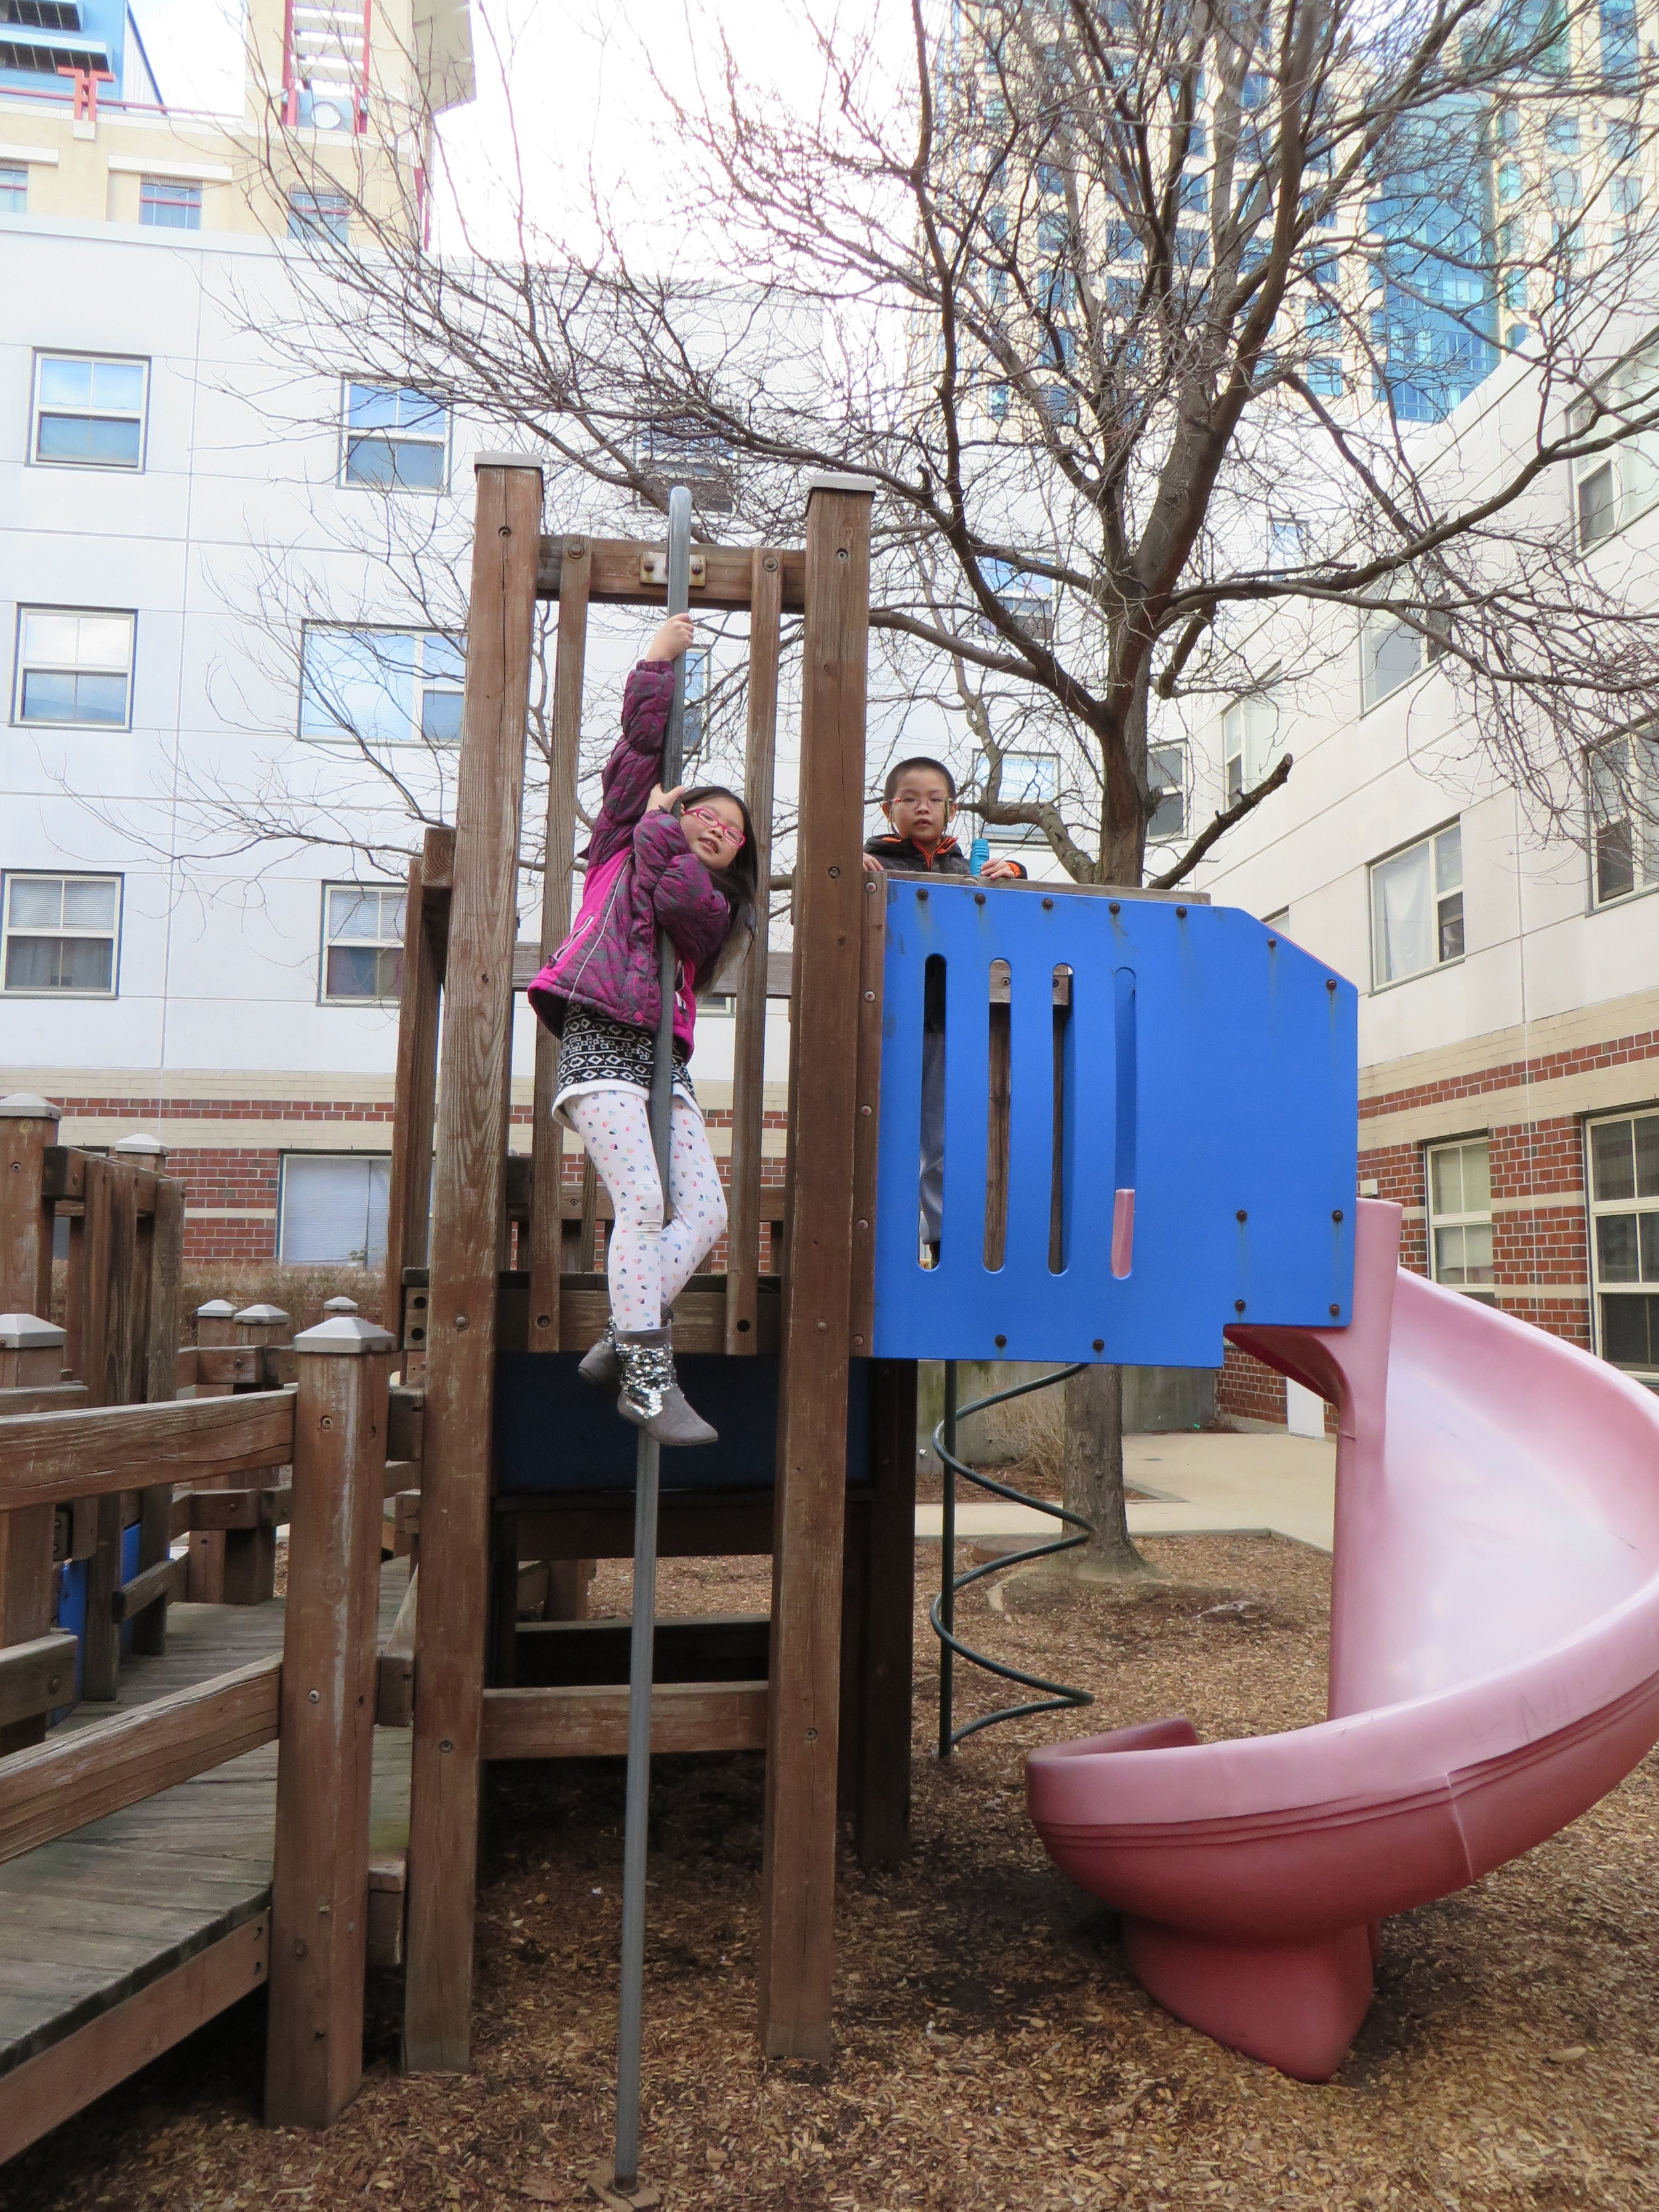 Kids playing on a playground at Oak Terrace